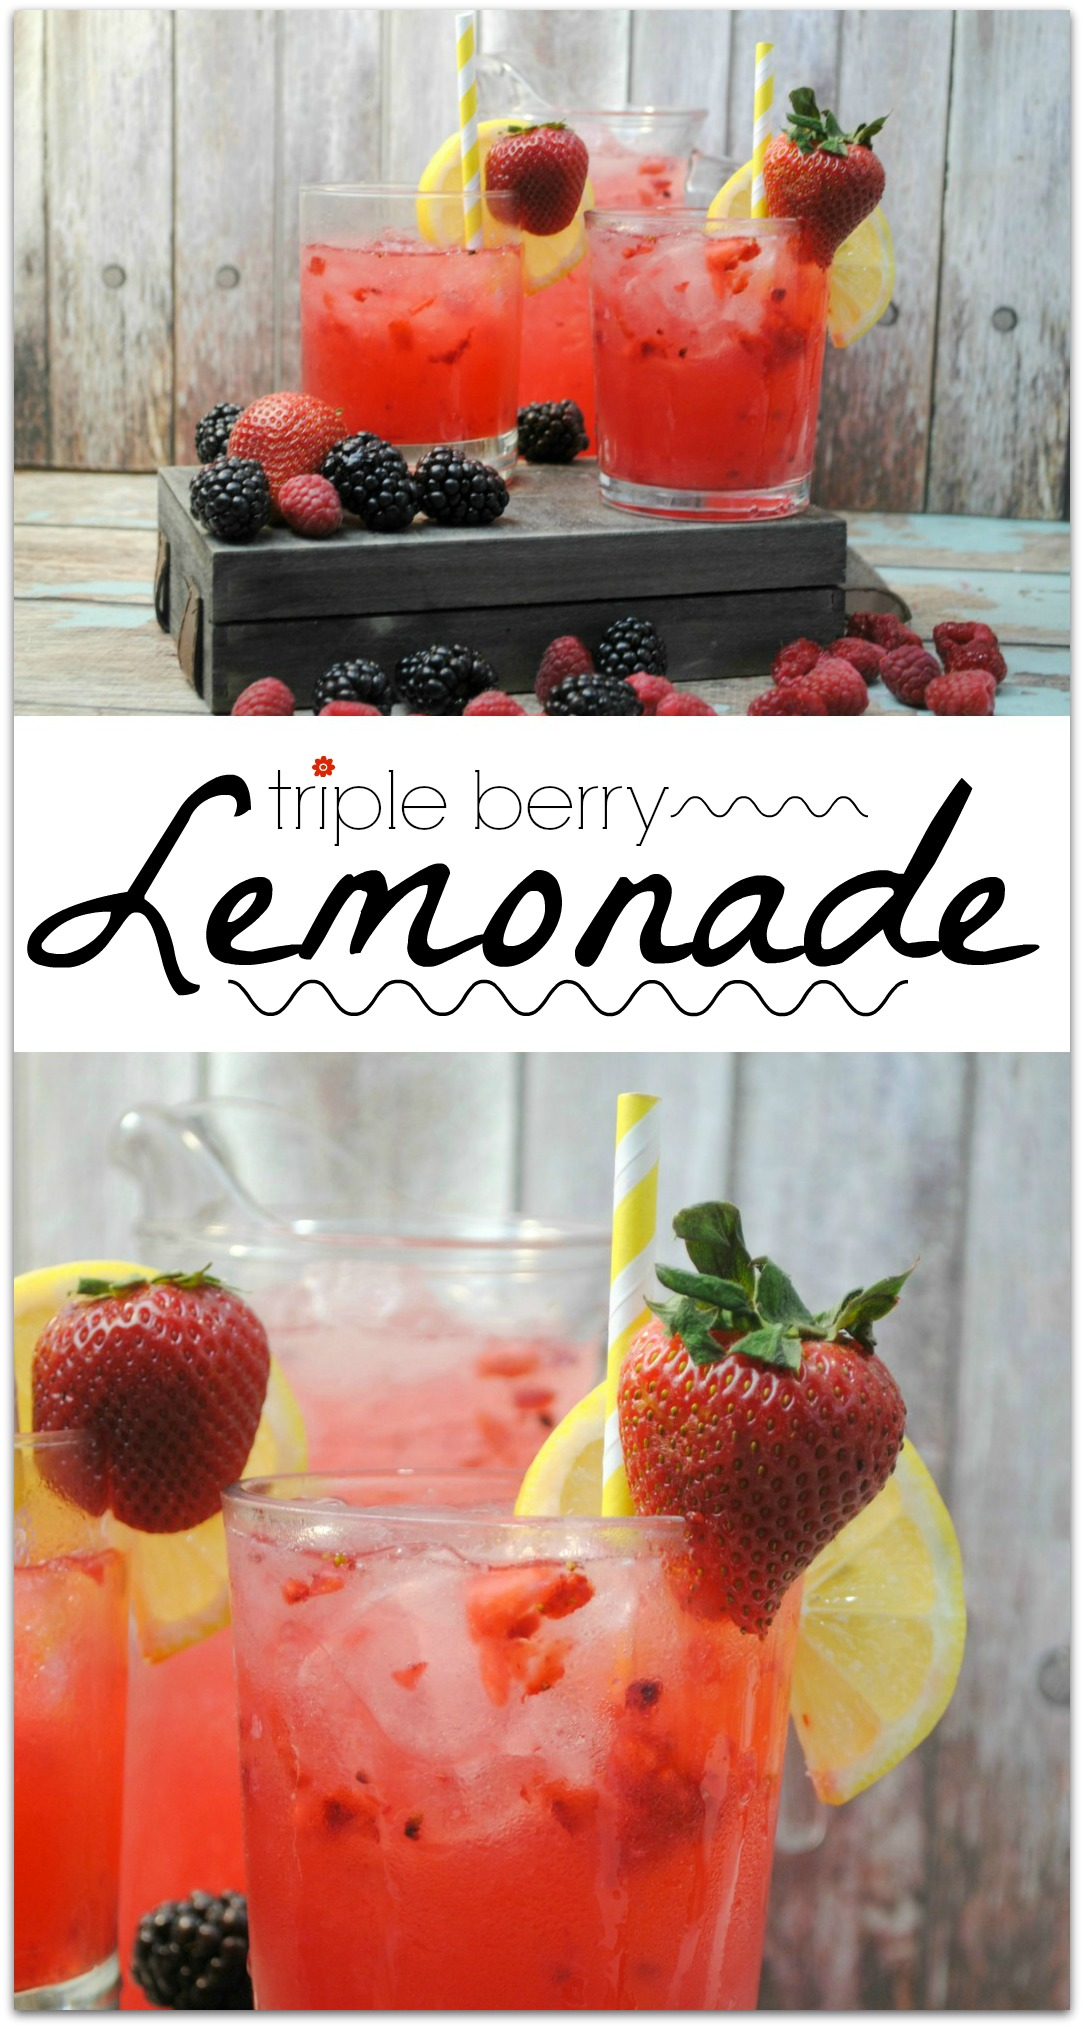 This refreshing triple berry lemonade is just what you need on a warm day, or anytime you need a cool and delicious drink! Such an easy recipe. The berries take lemonade to a whole new level!